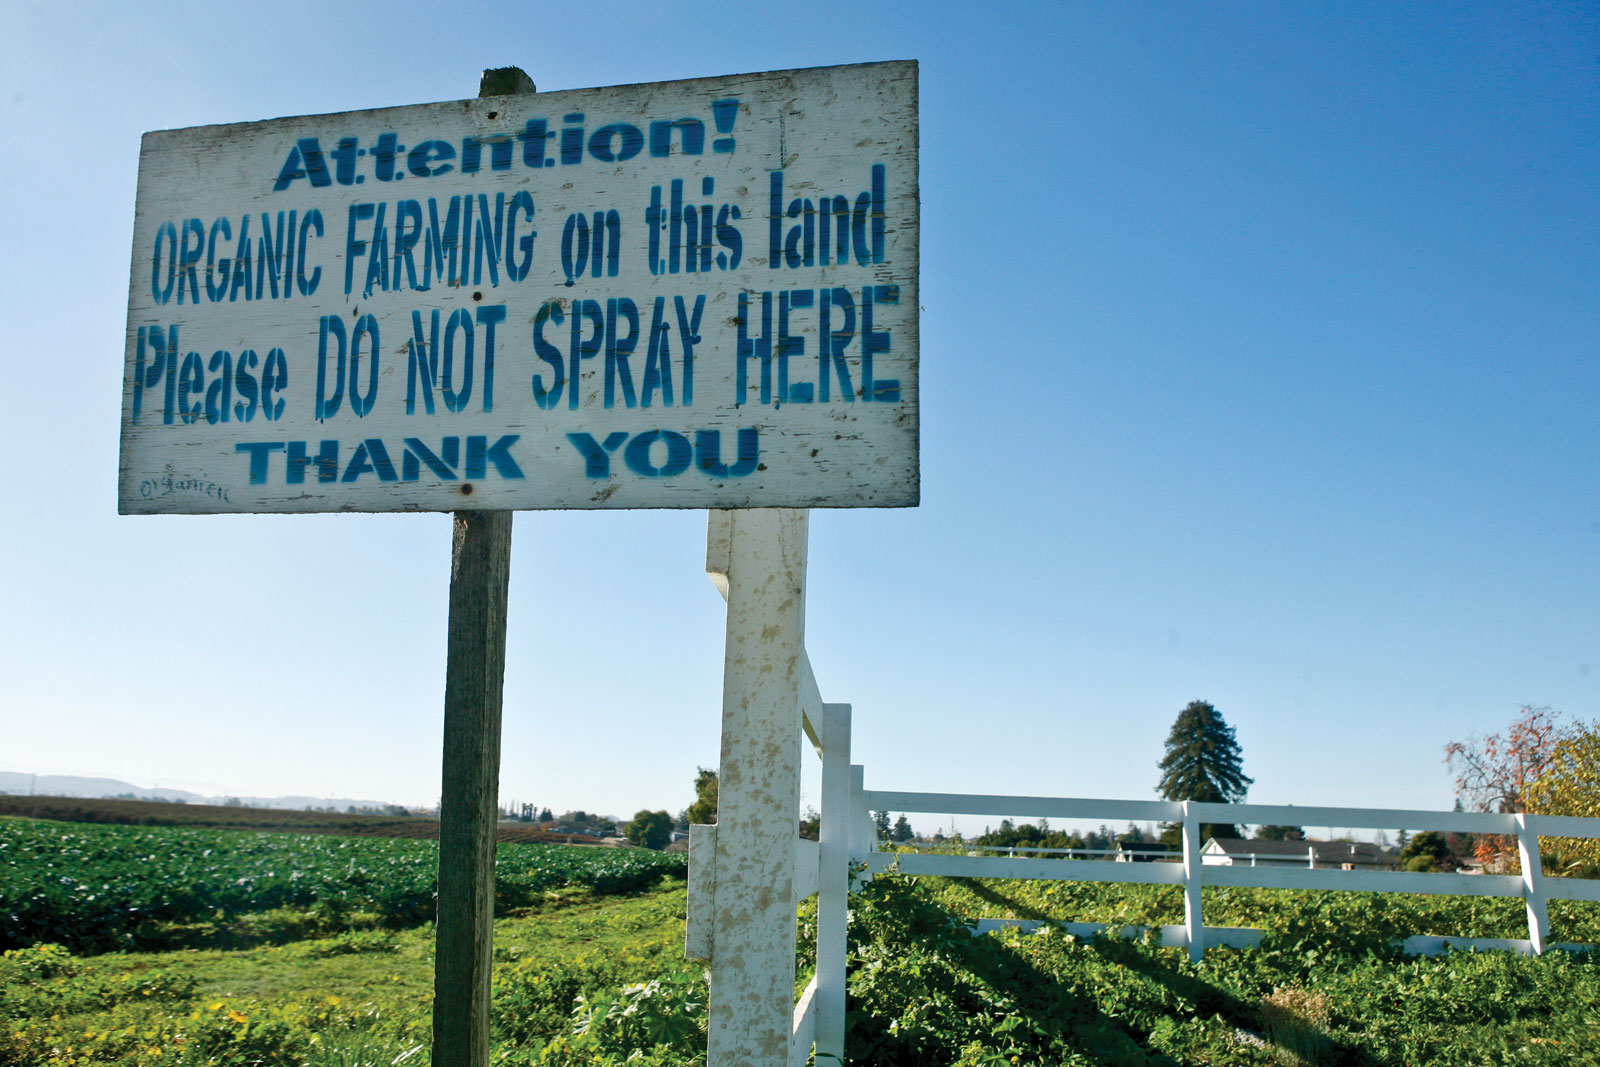 farm sign: Attention! Organic farming on this land. Please do not spray here. Thank You.